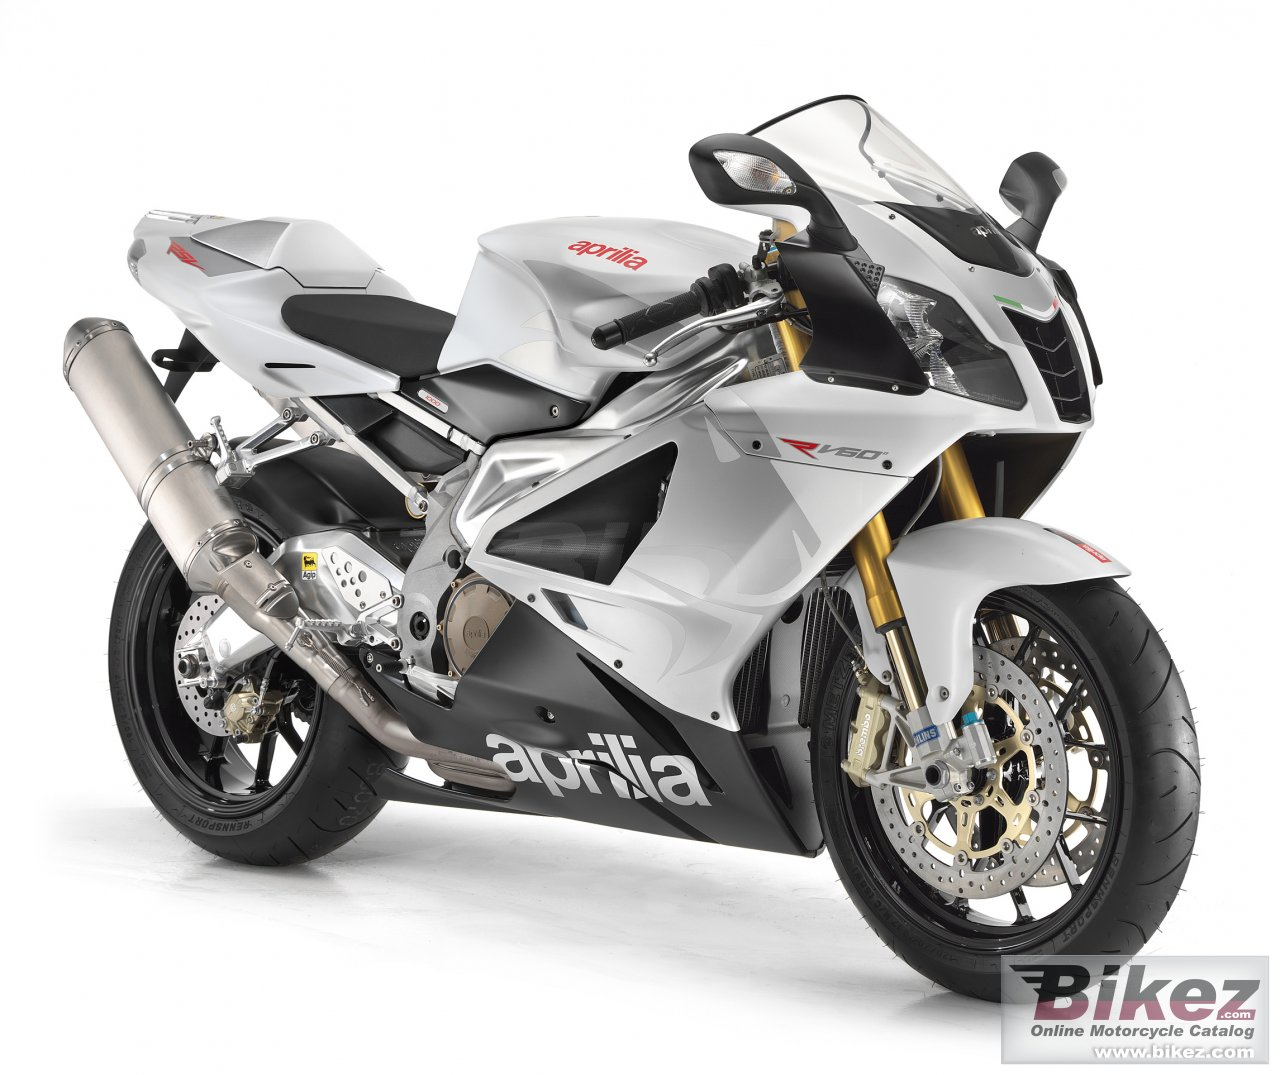 Big Aprilia rsv 1000 r picture and wallpaper from Bikez.com